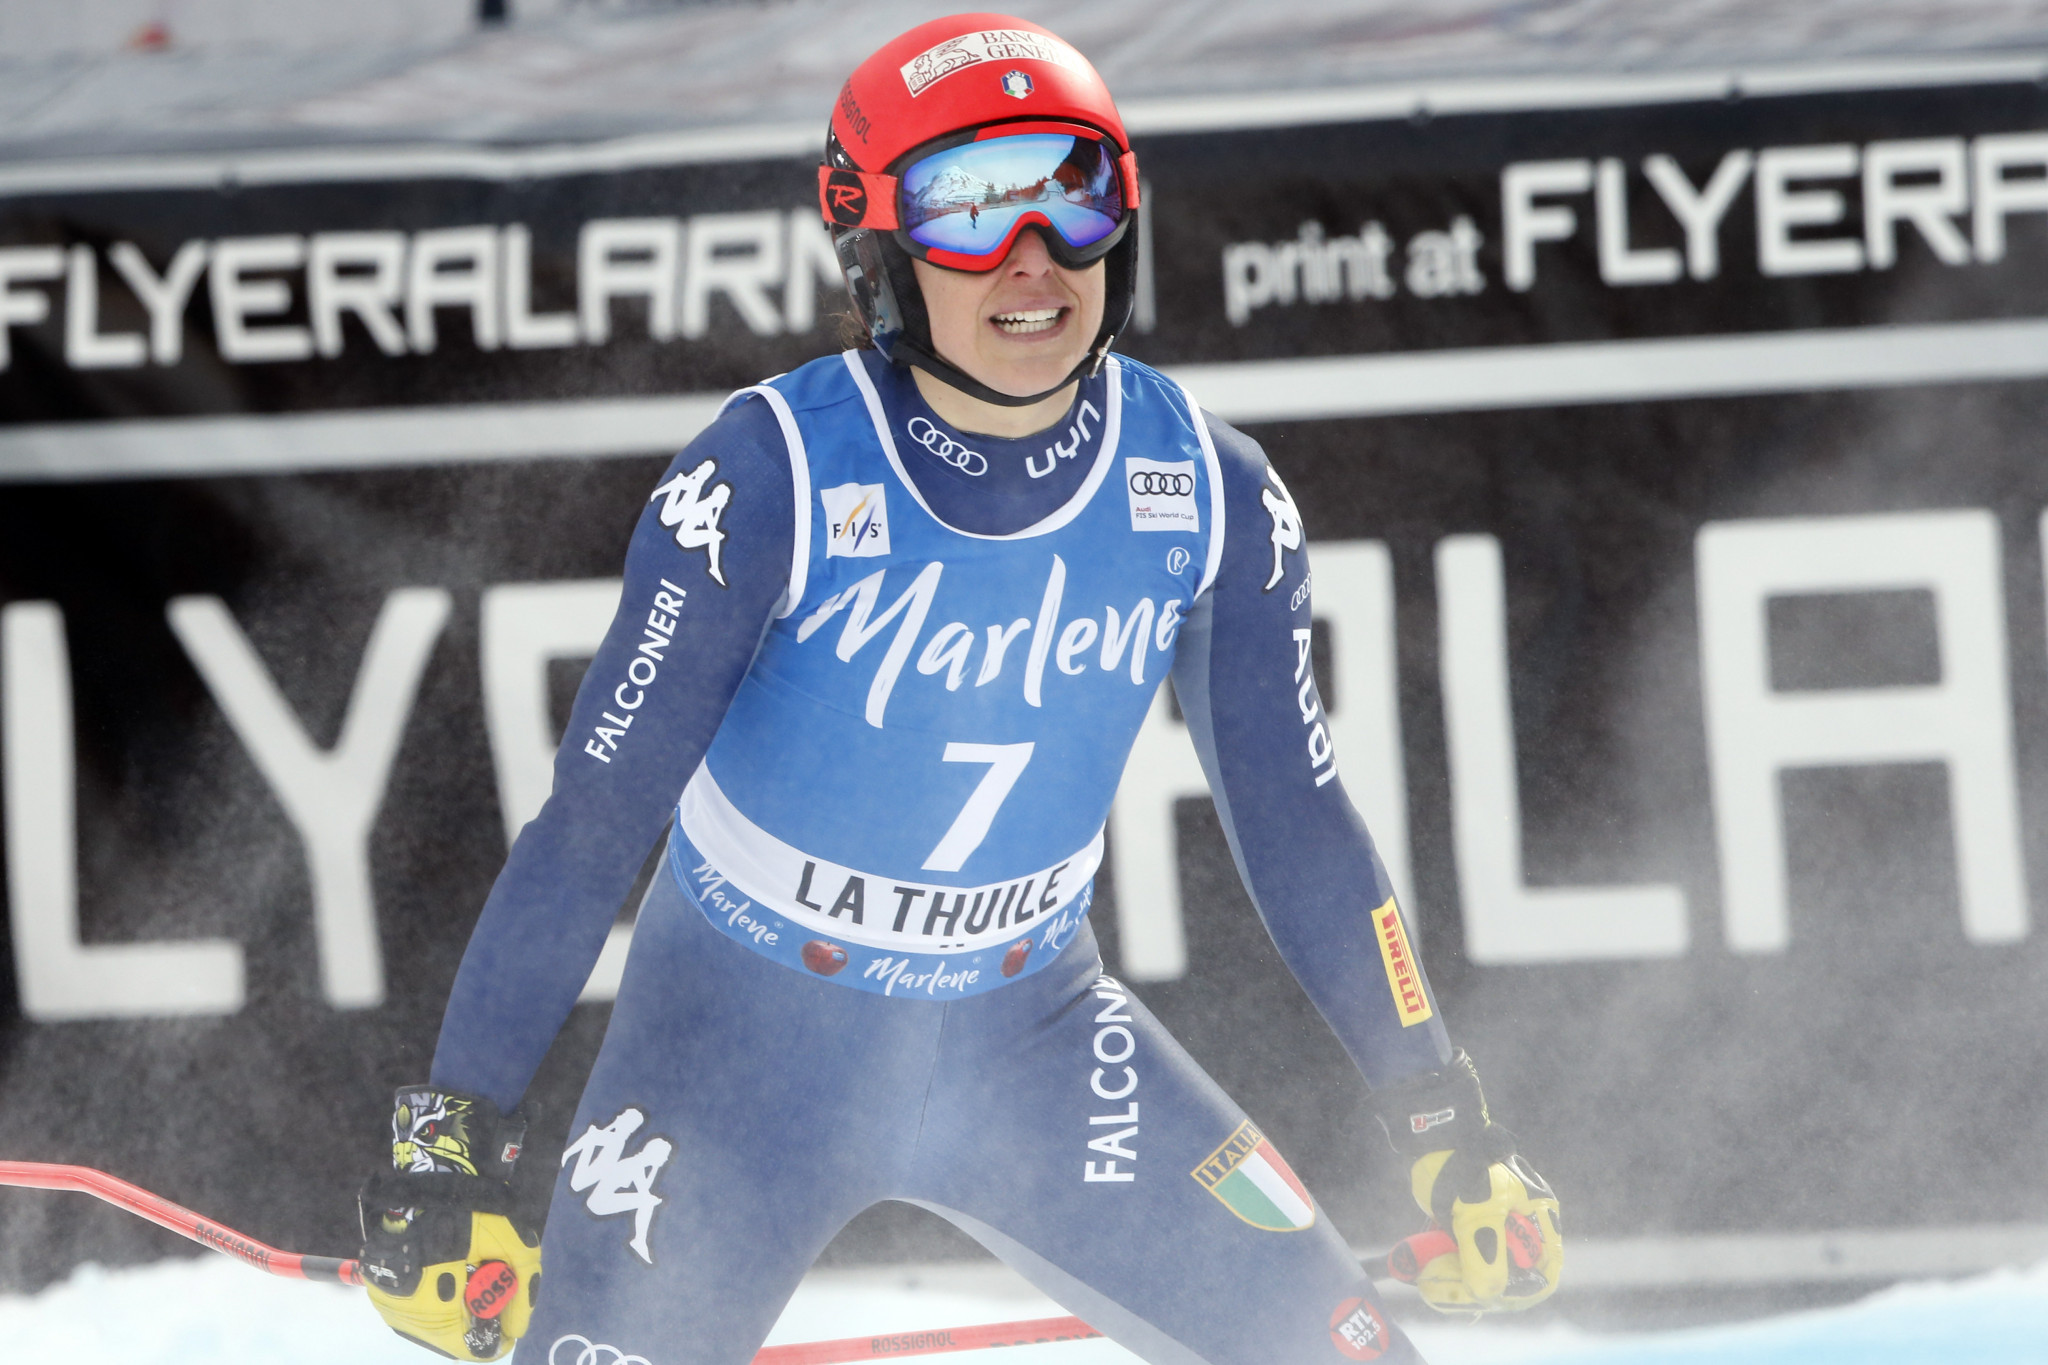 Brignone crowned overall women's champion after FIS cancel Alpine World Cup in Åre